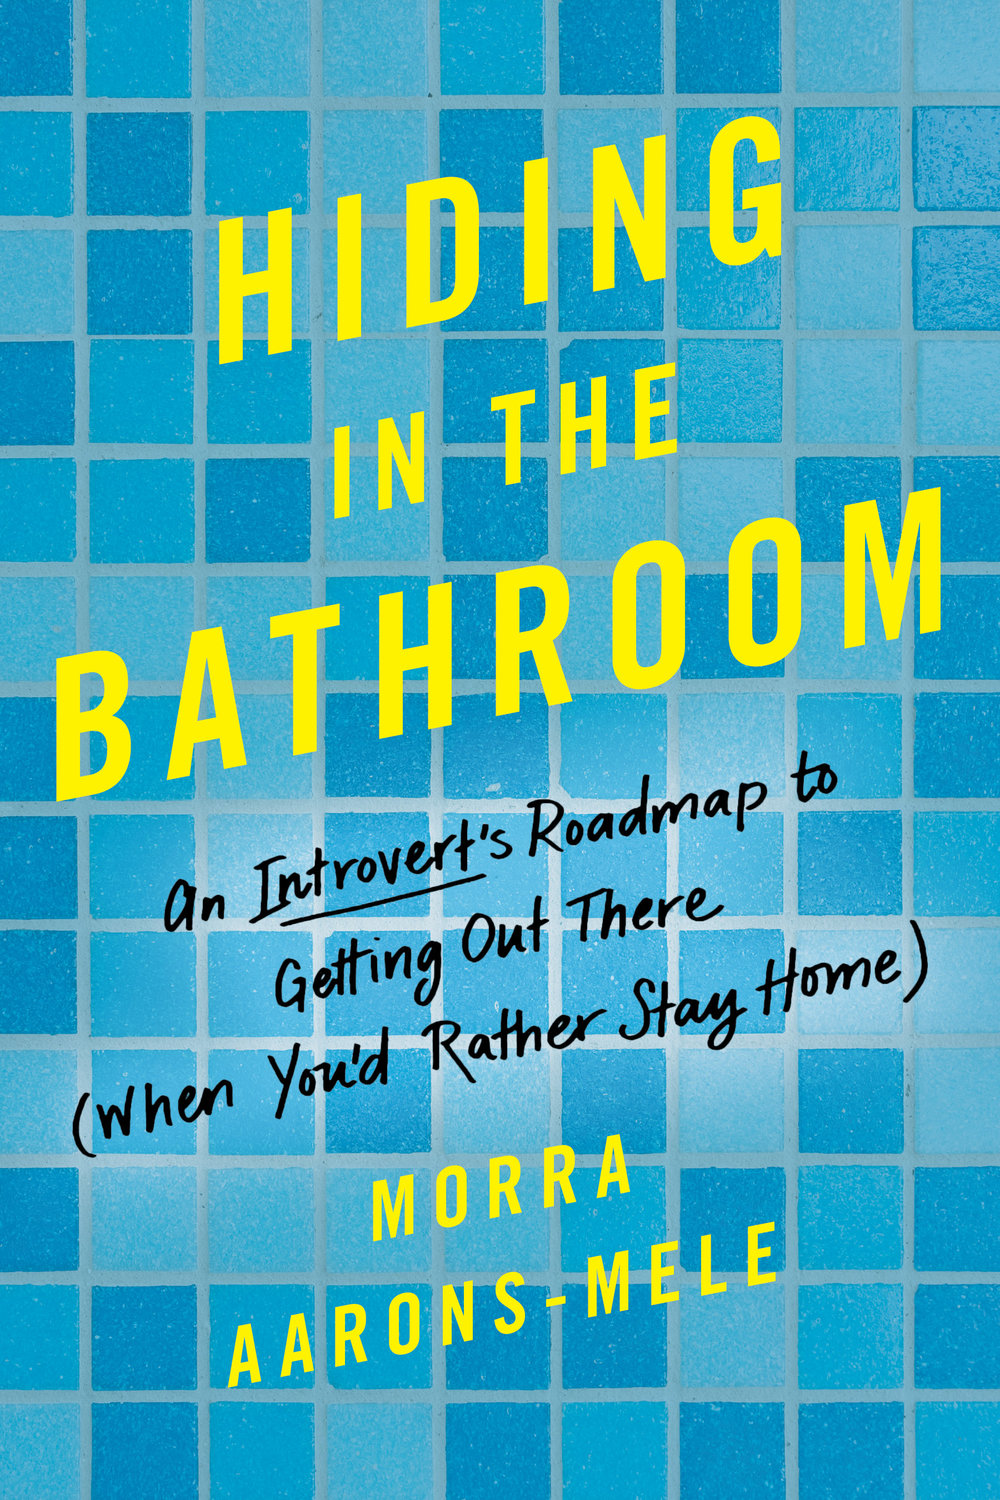 Listen to my podcast Hiding in the bathroom and other unlikely secrets of success